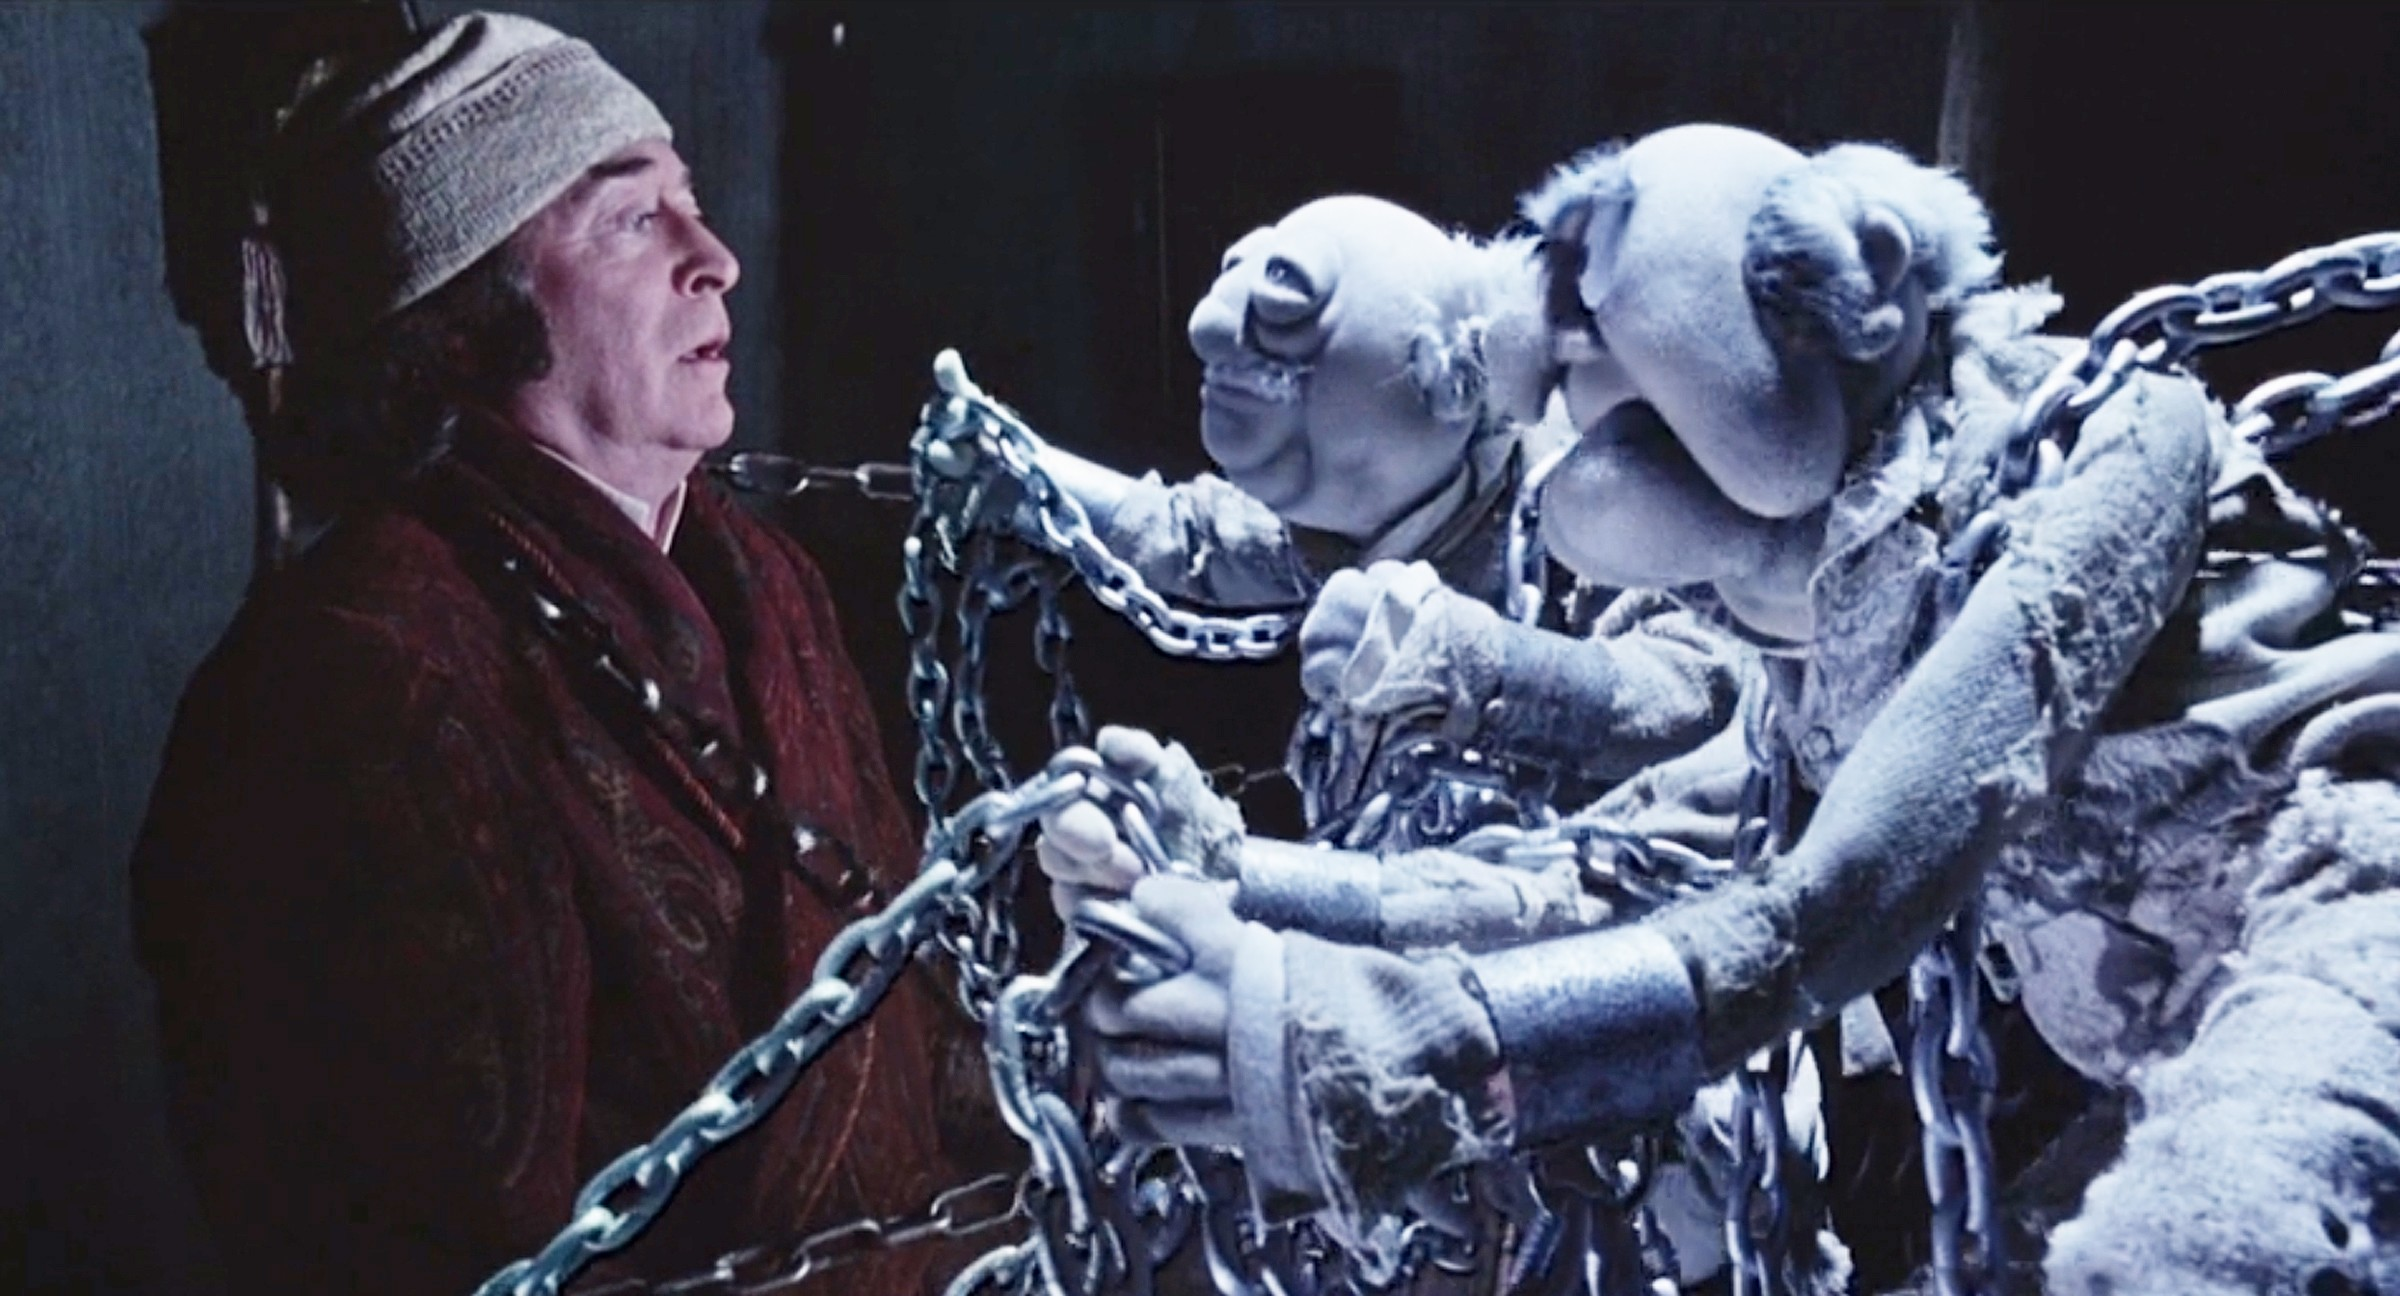 Michael Caine as Ebenezer Scrooge in 'The Muppet Christmas Carol'